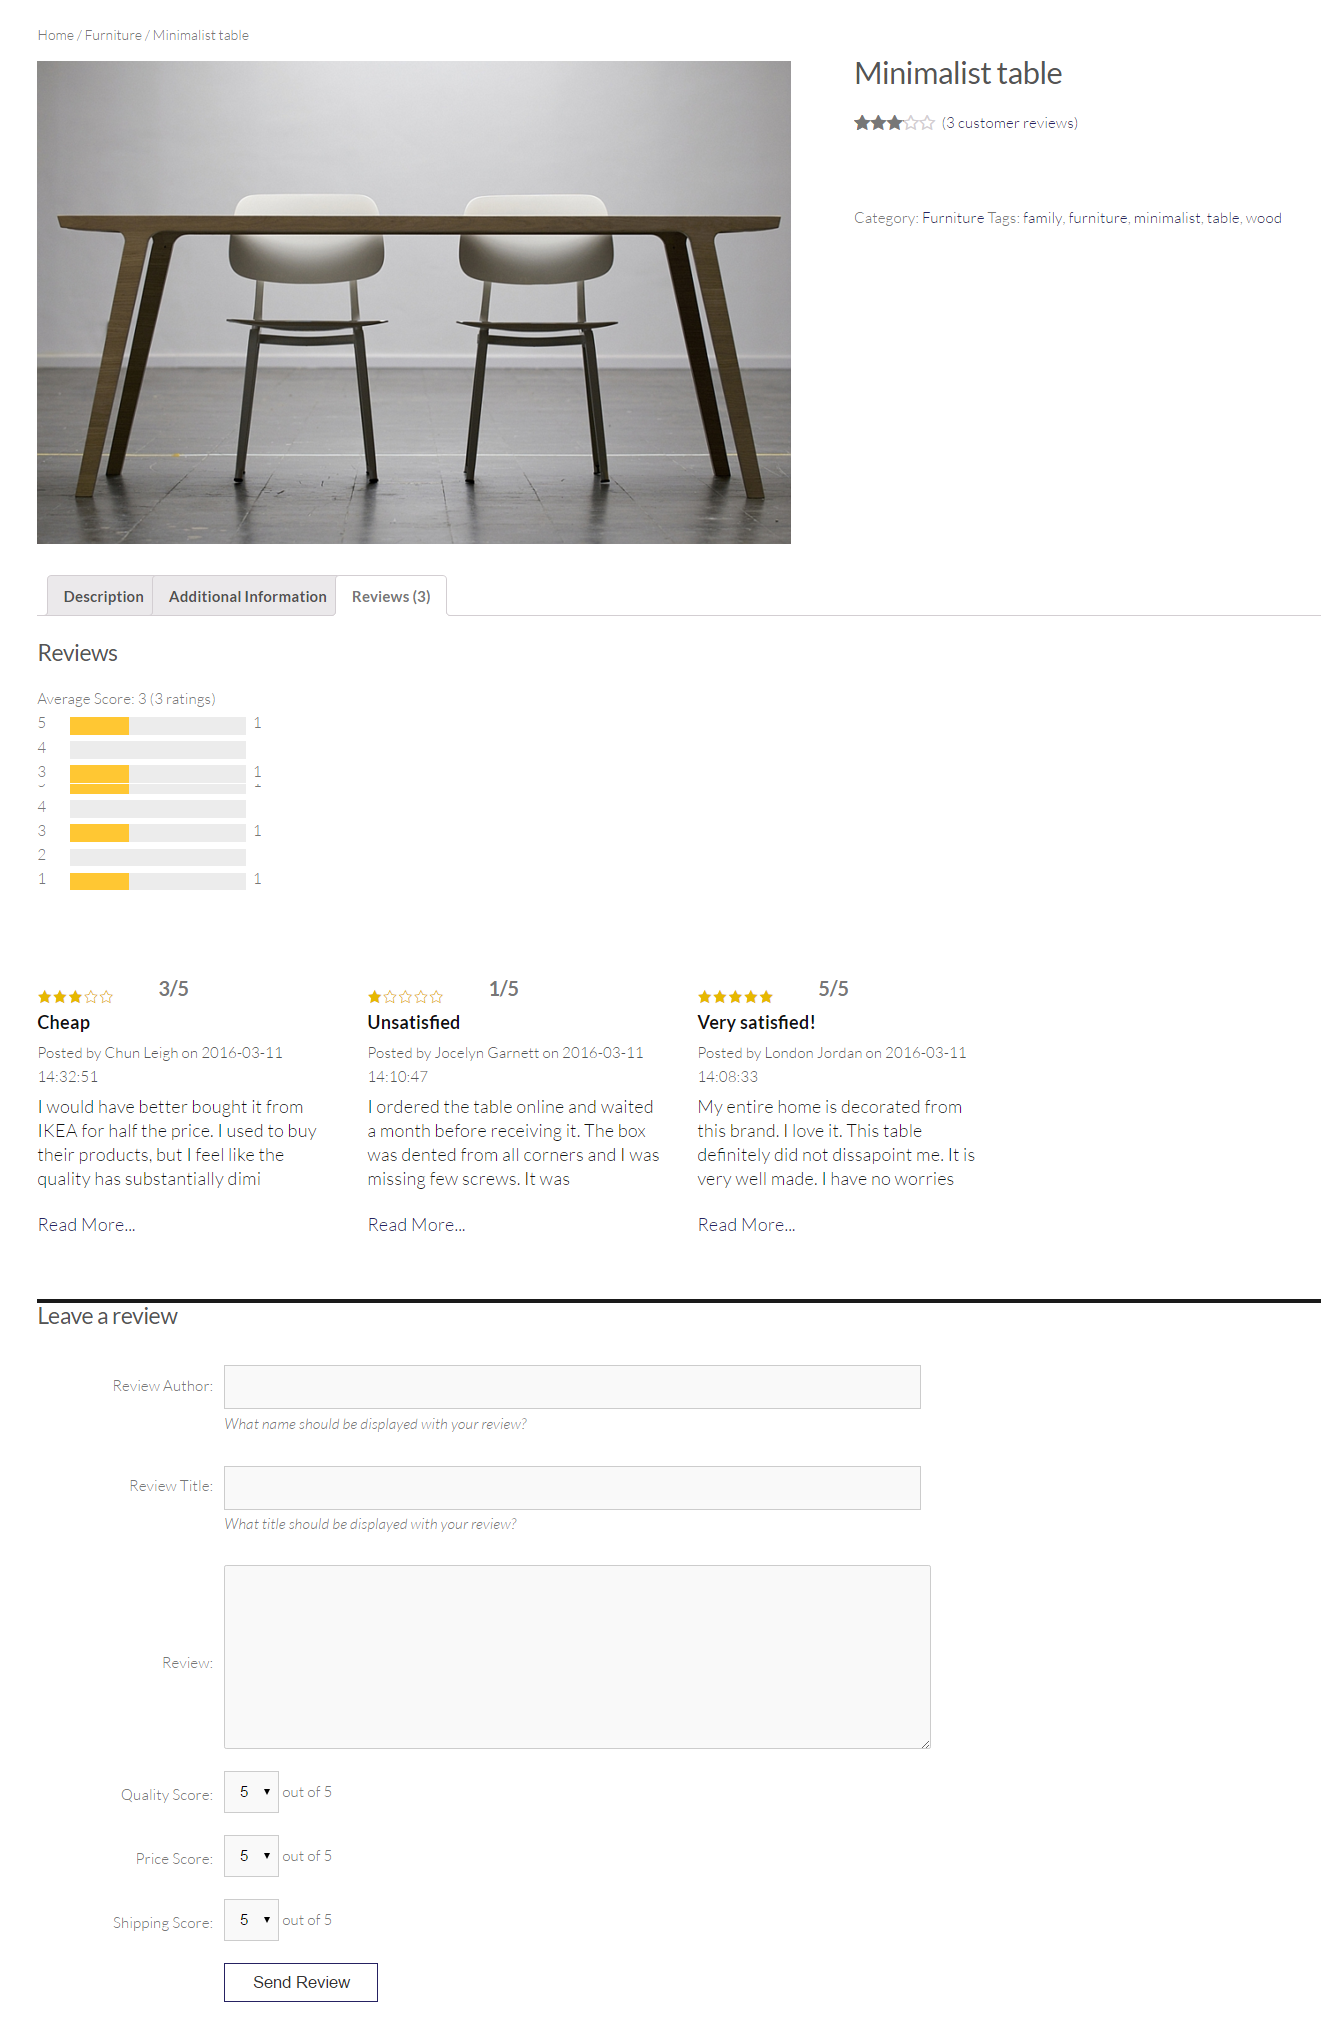 WooCommerce rating and review integration on the WooCommerce product page